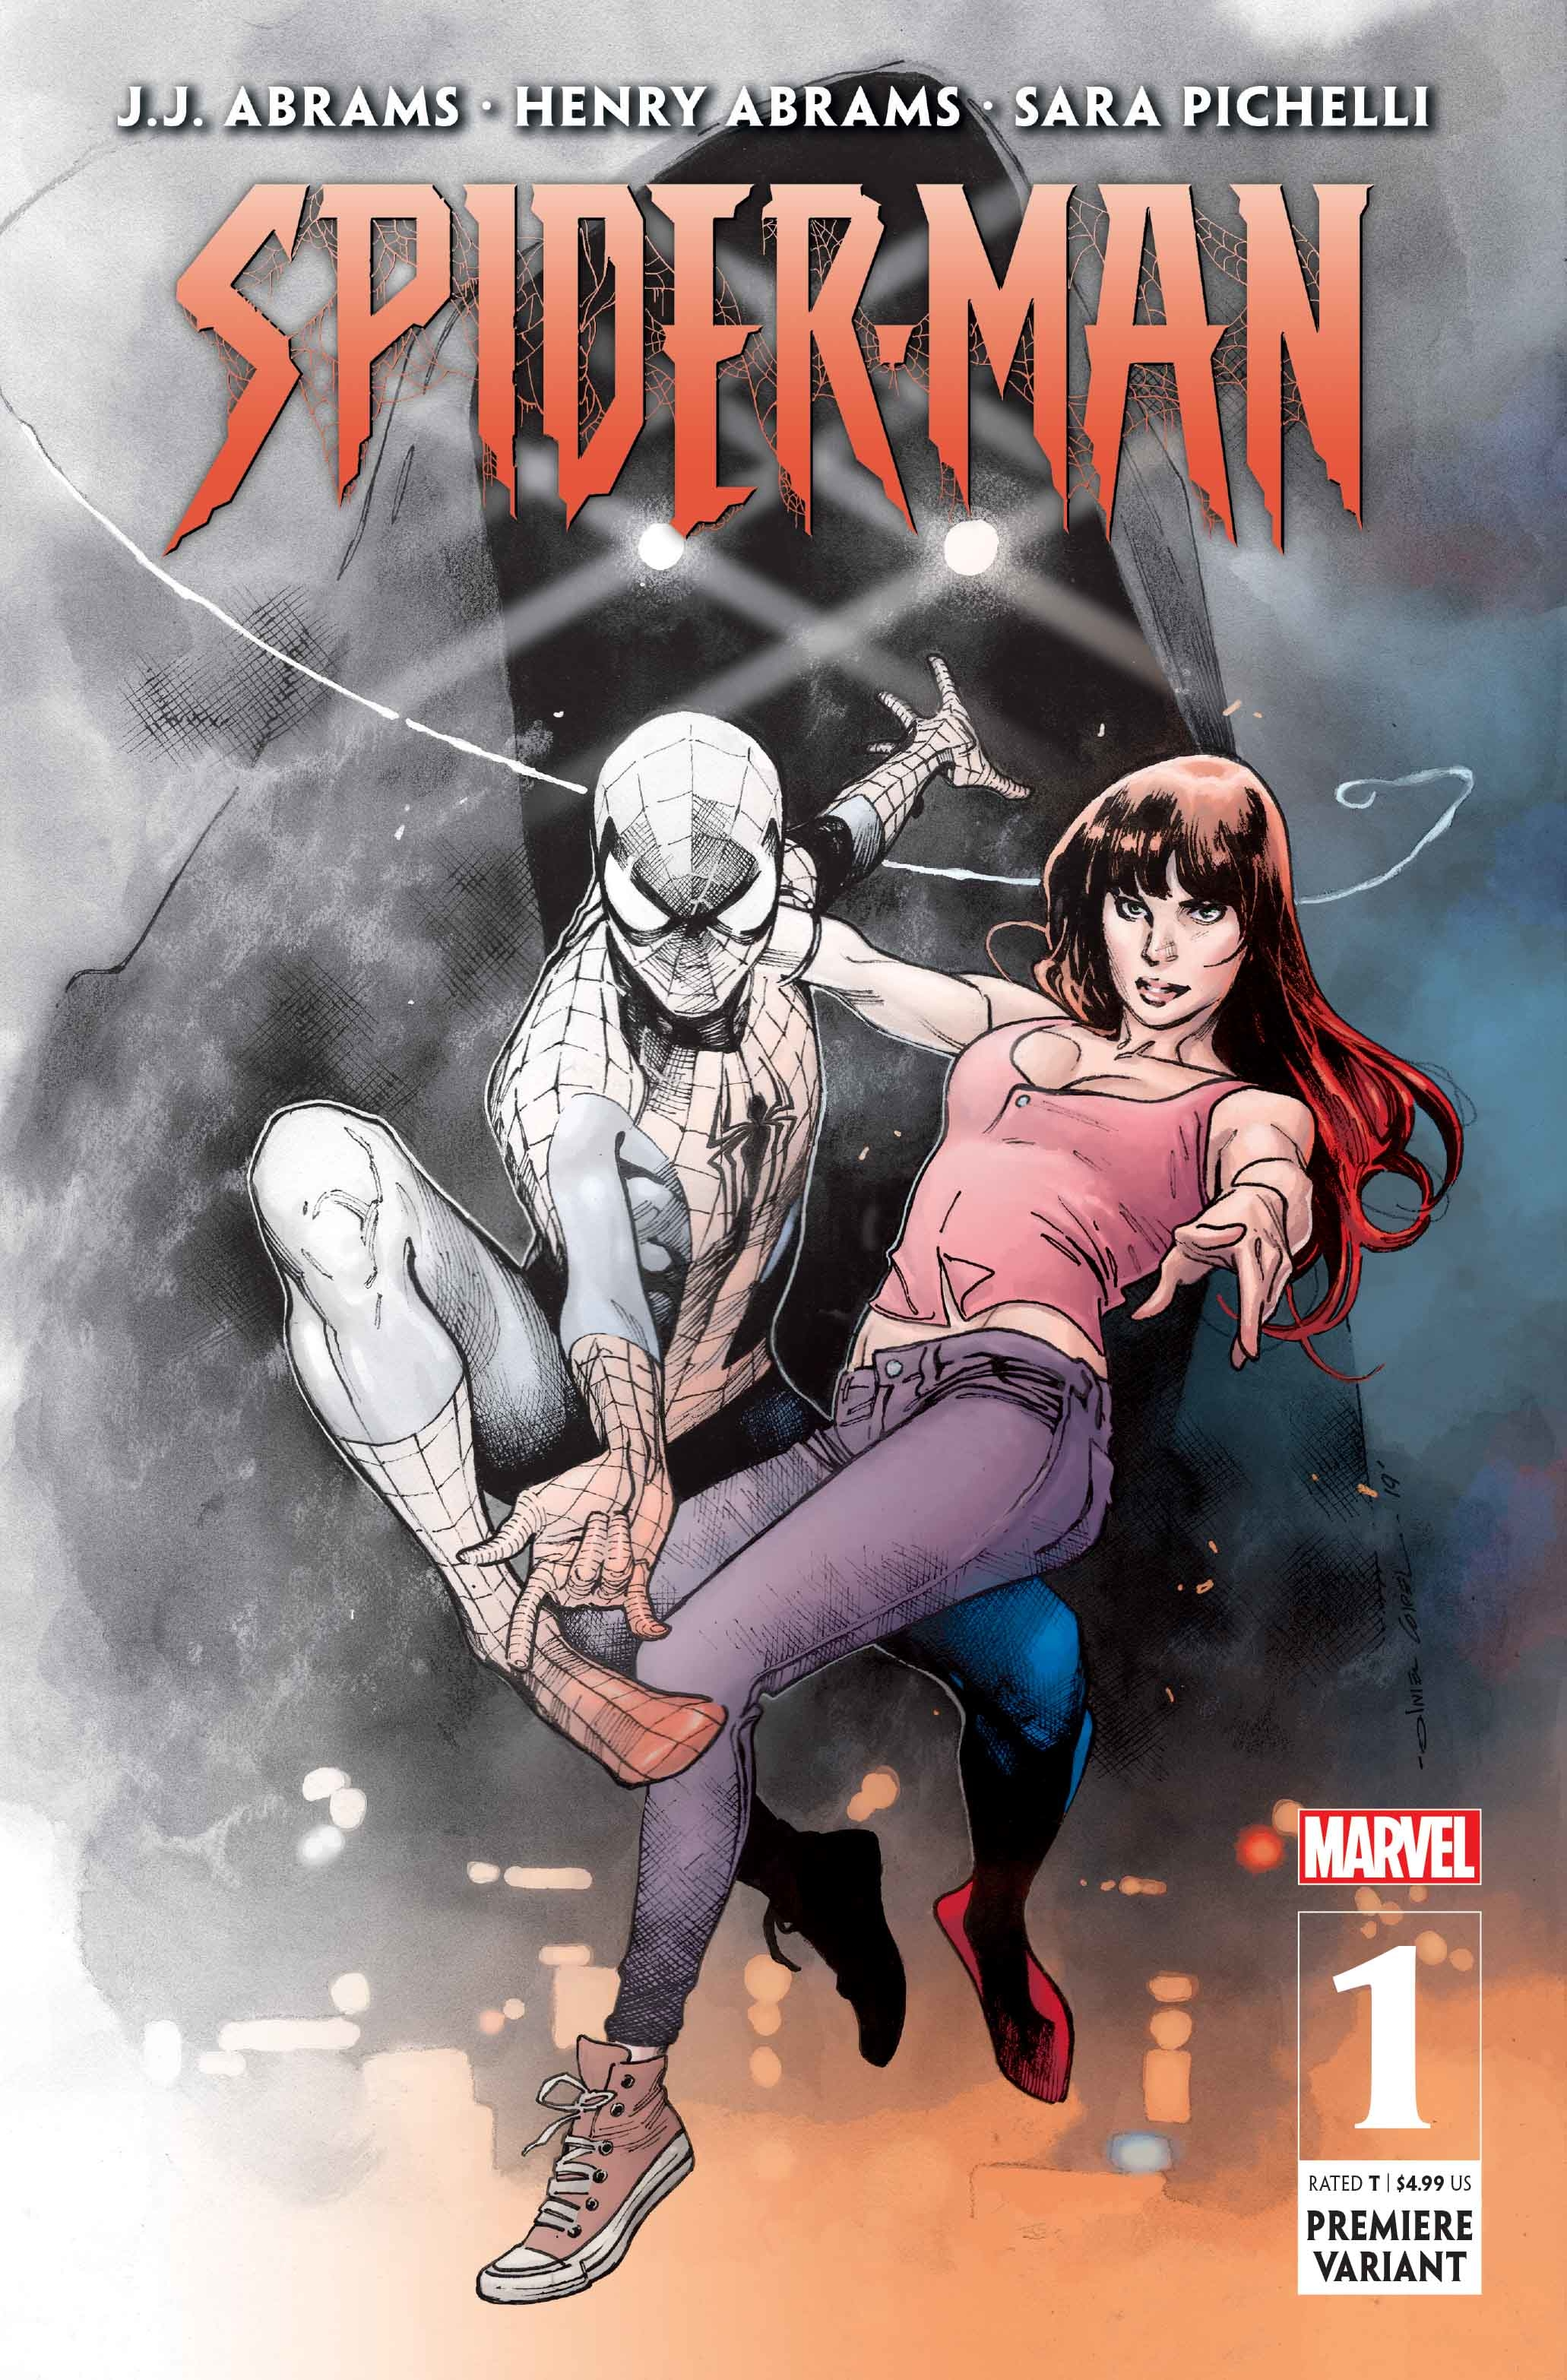 SPIDER-MAN #1 (OF 5) COIPEL PREMIERE VAR